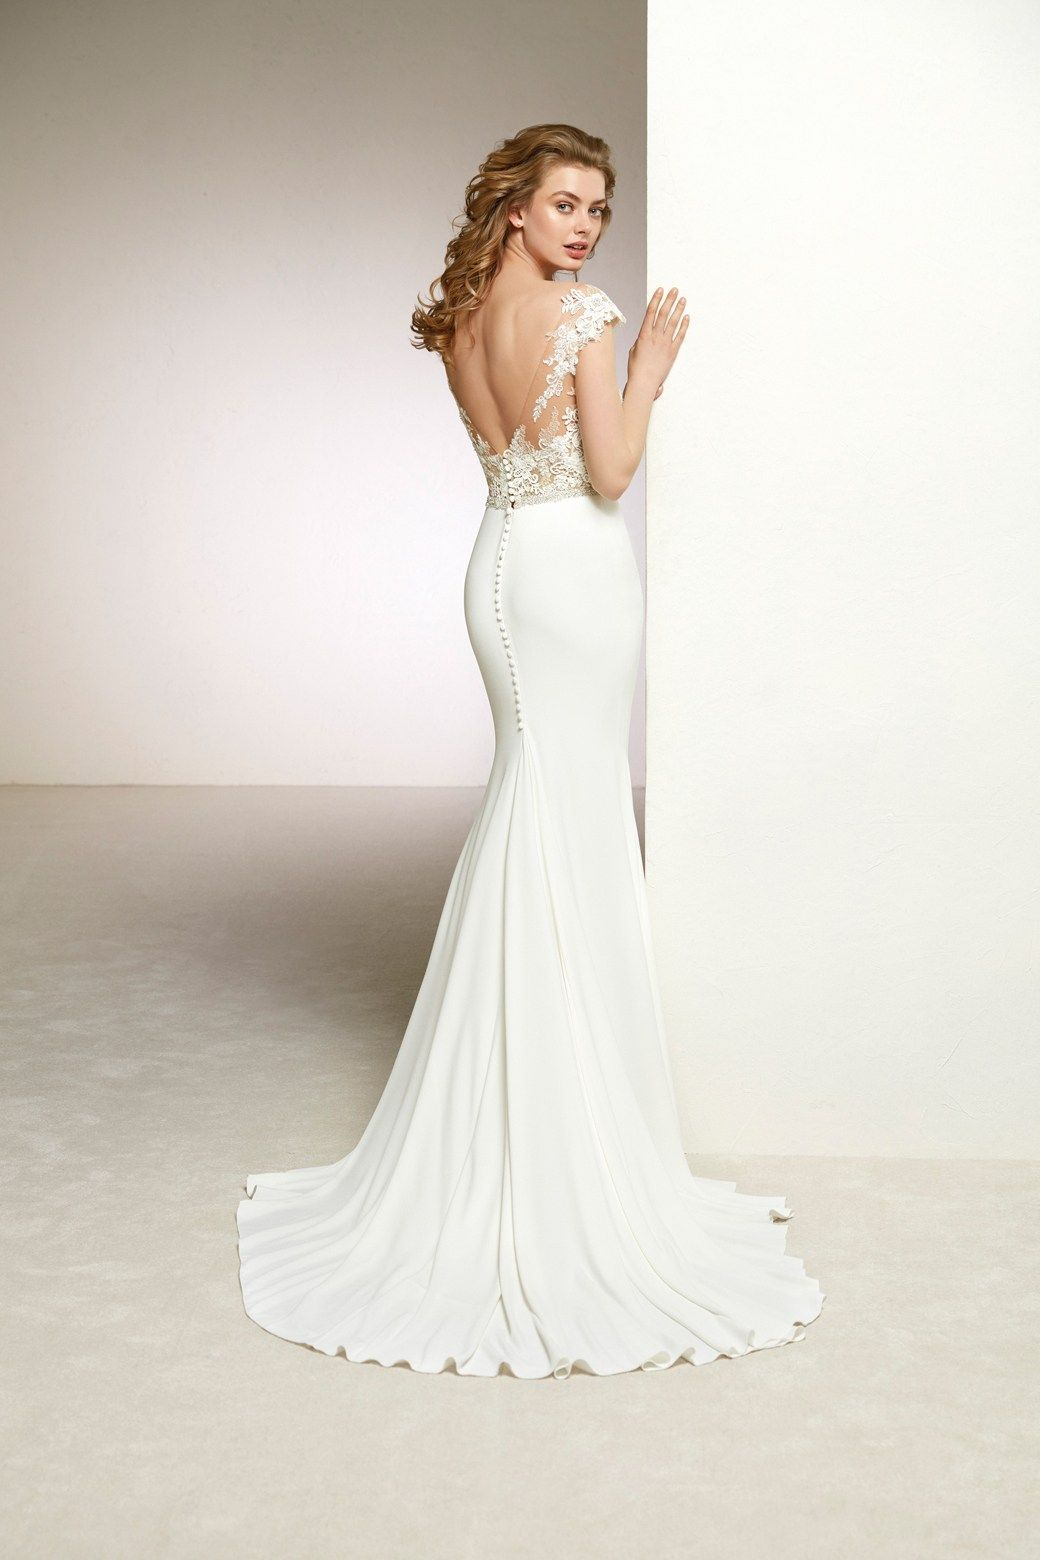 Wild Love The New Atelier Pronovias And Pronovias 2018 Collections Wedding Dresses Bridal Gowns Mermaid Designer Bridal Gowns